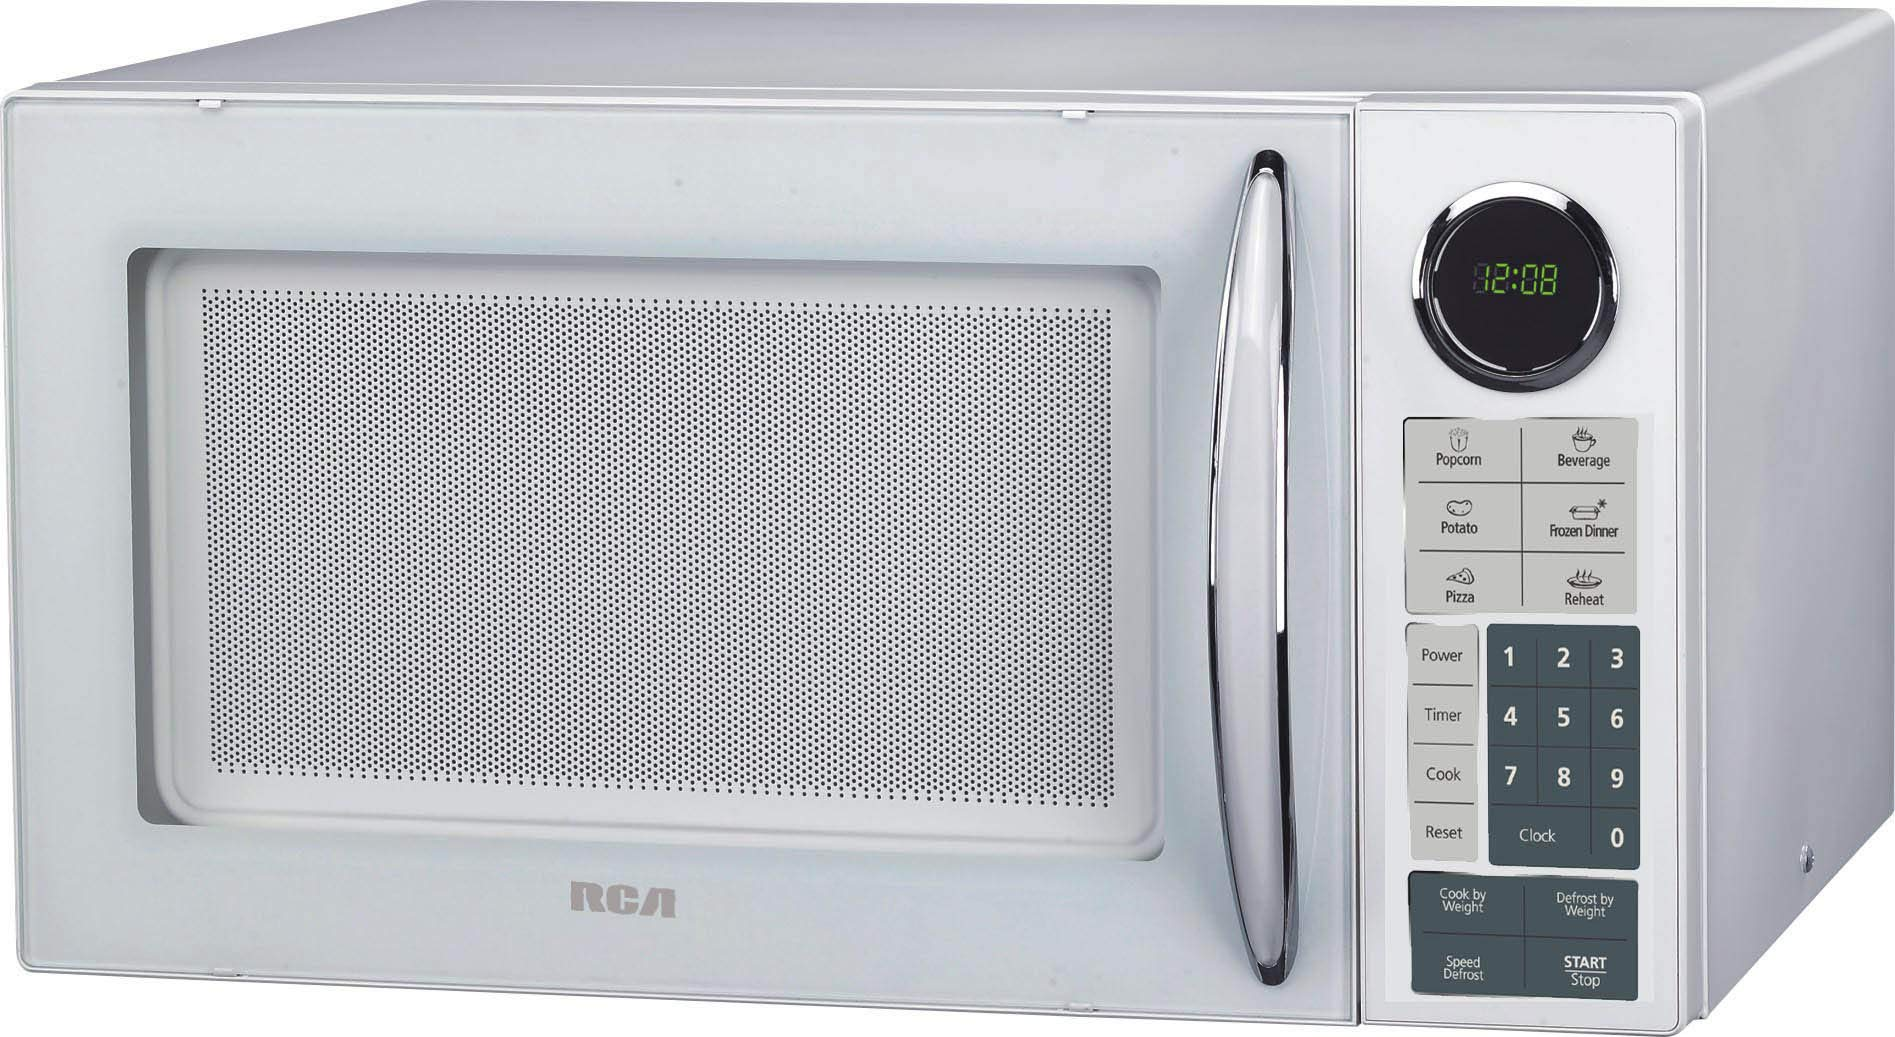 RCA RMW953-WHITE 0.9 Cu Ft Countertop Microwave, White, Mid-size, by RCA